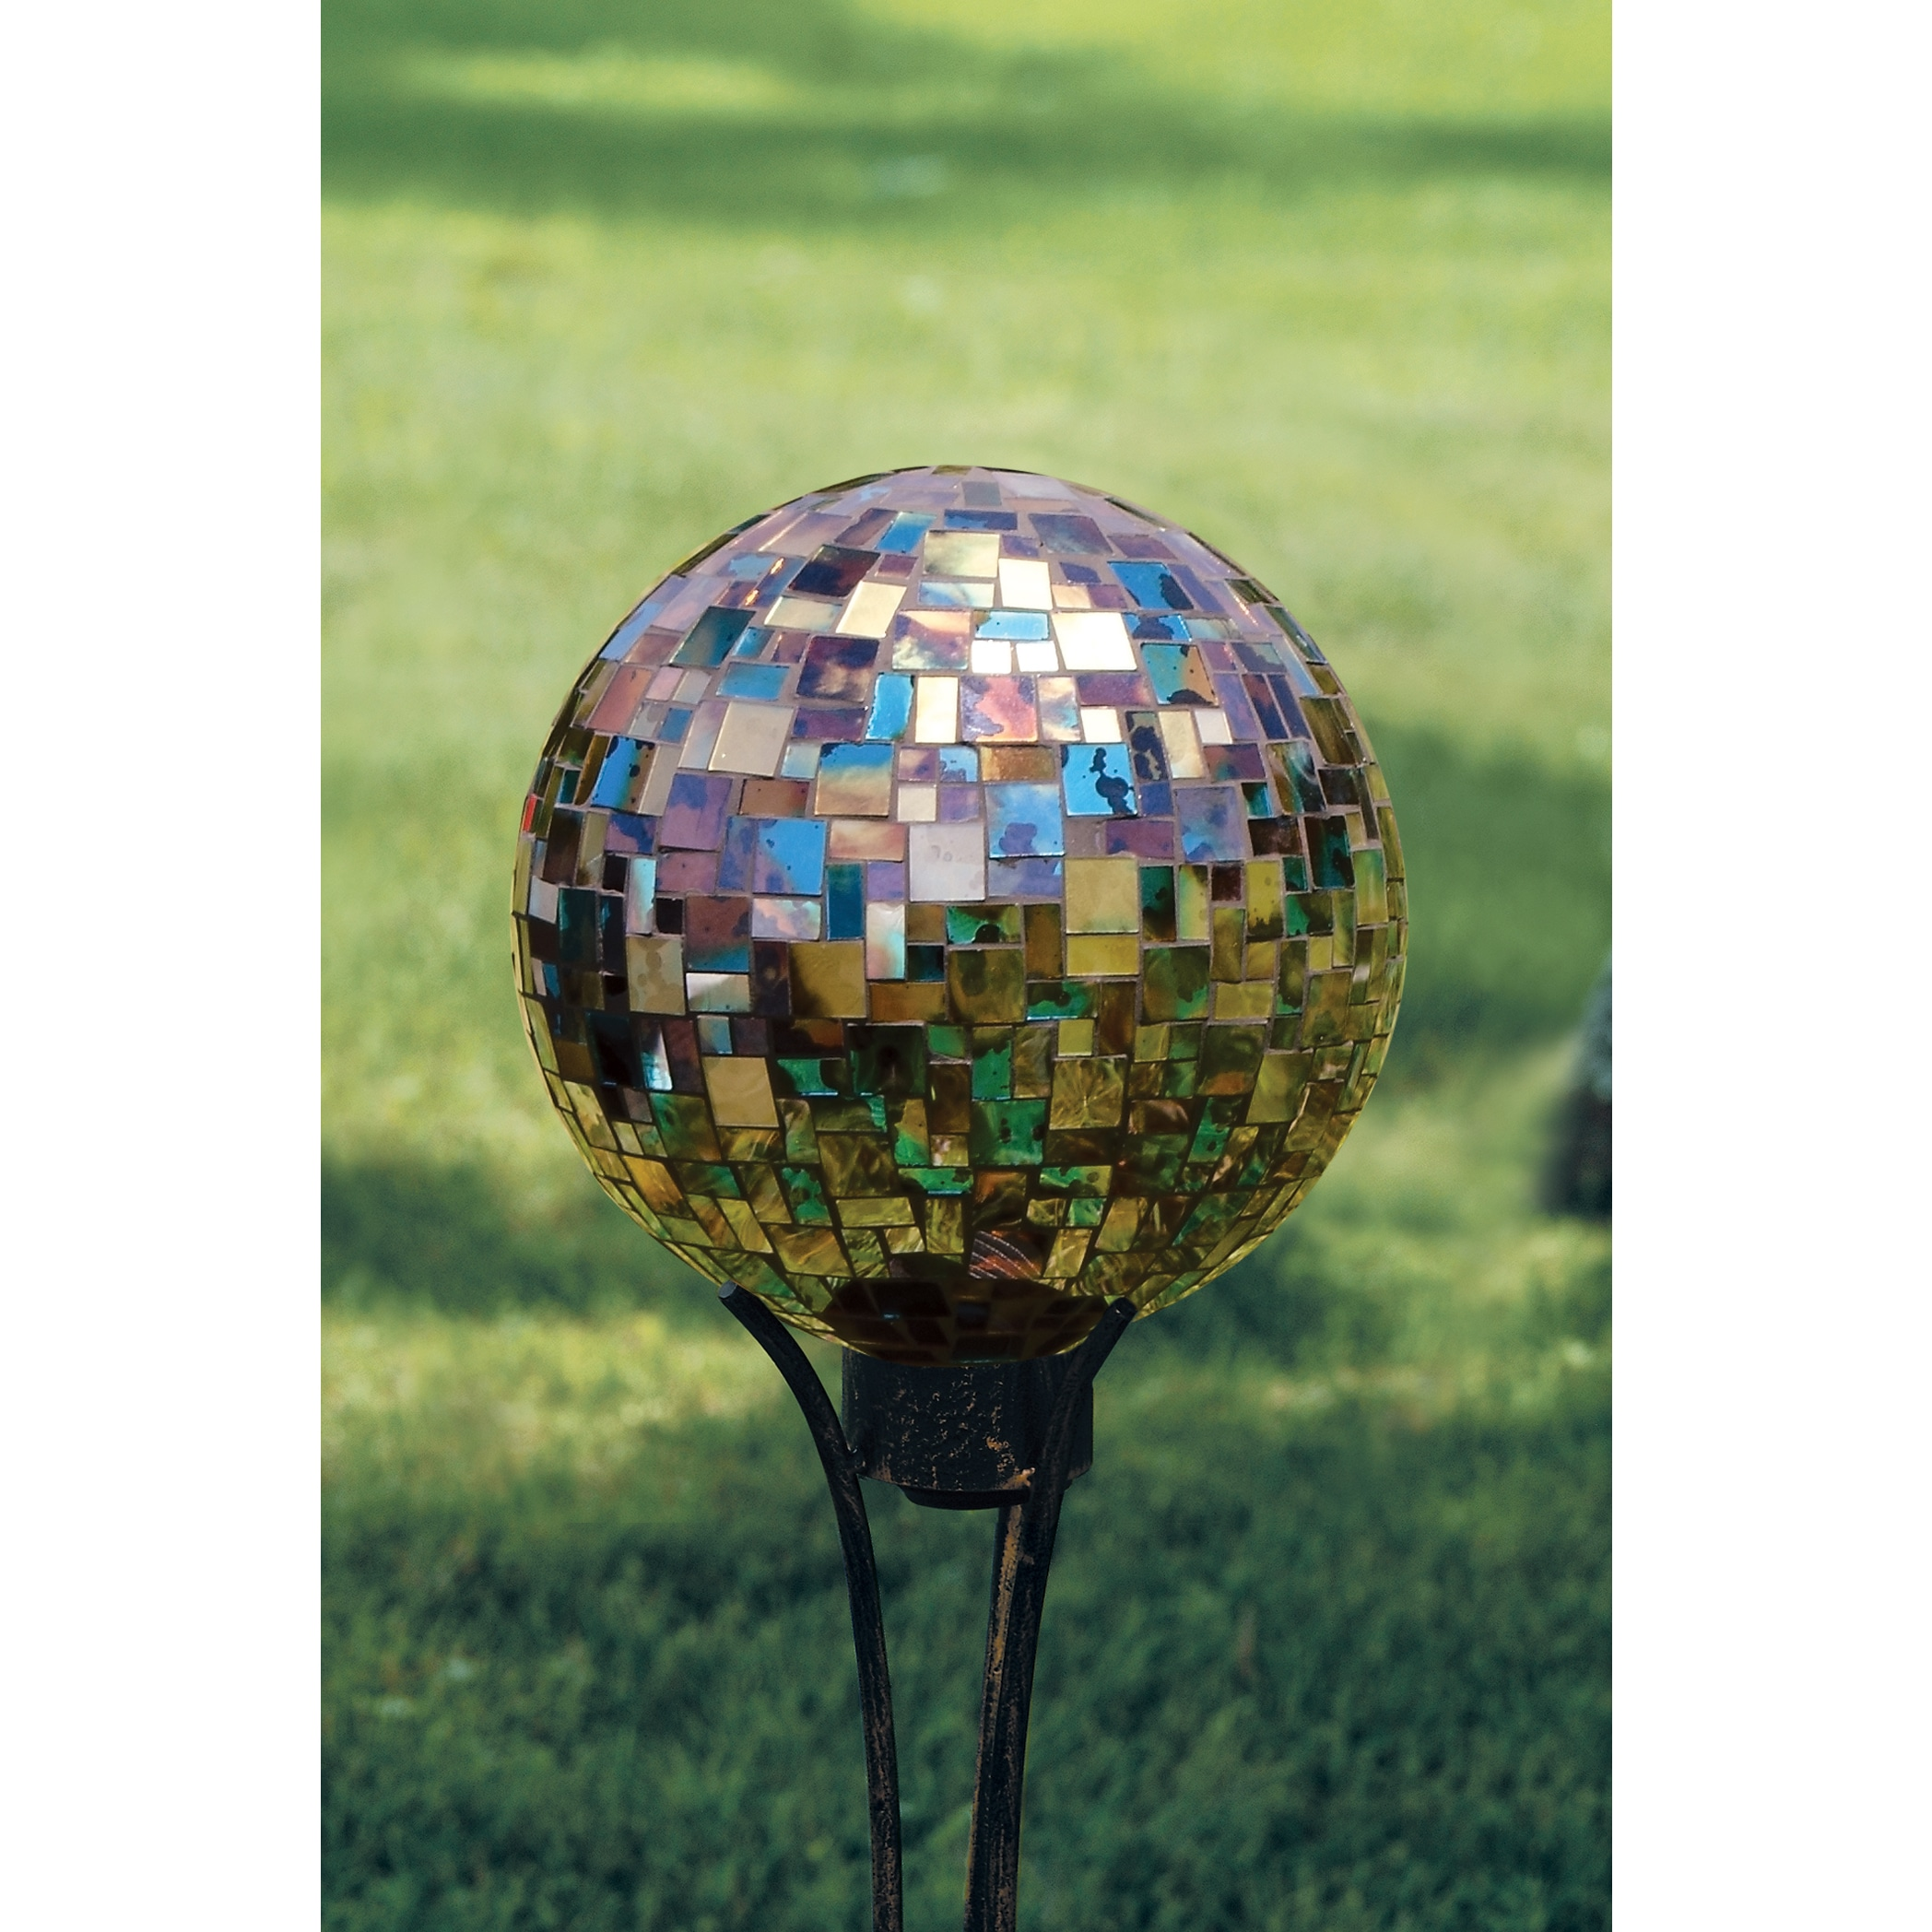 Carson Home Accents Blue Art Glass 10-inch Hand-painted Mosaic Garden Gazing Ball by Overstock